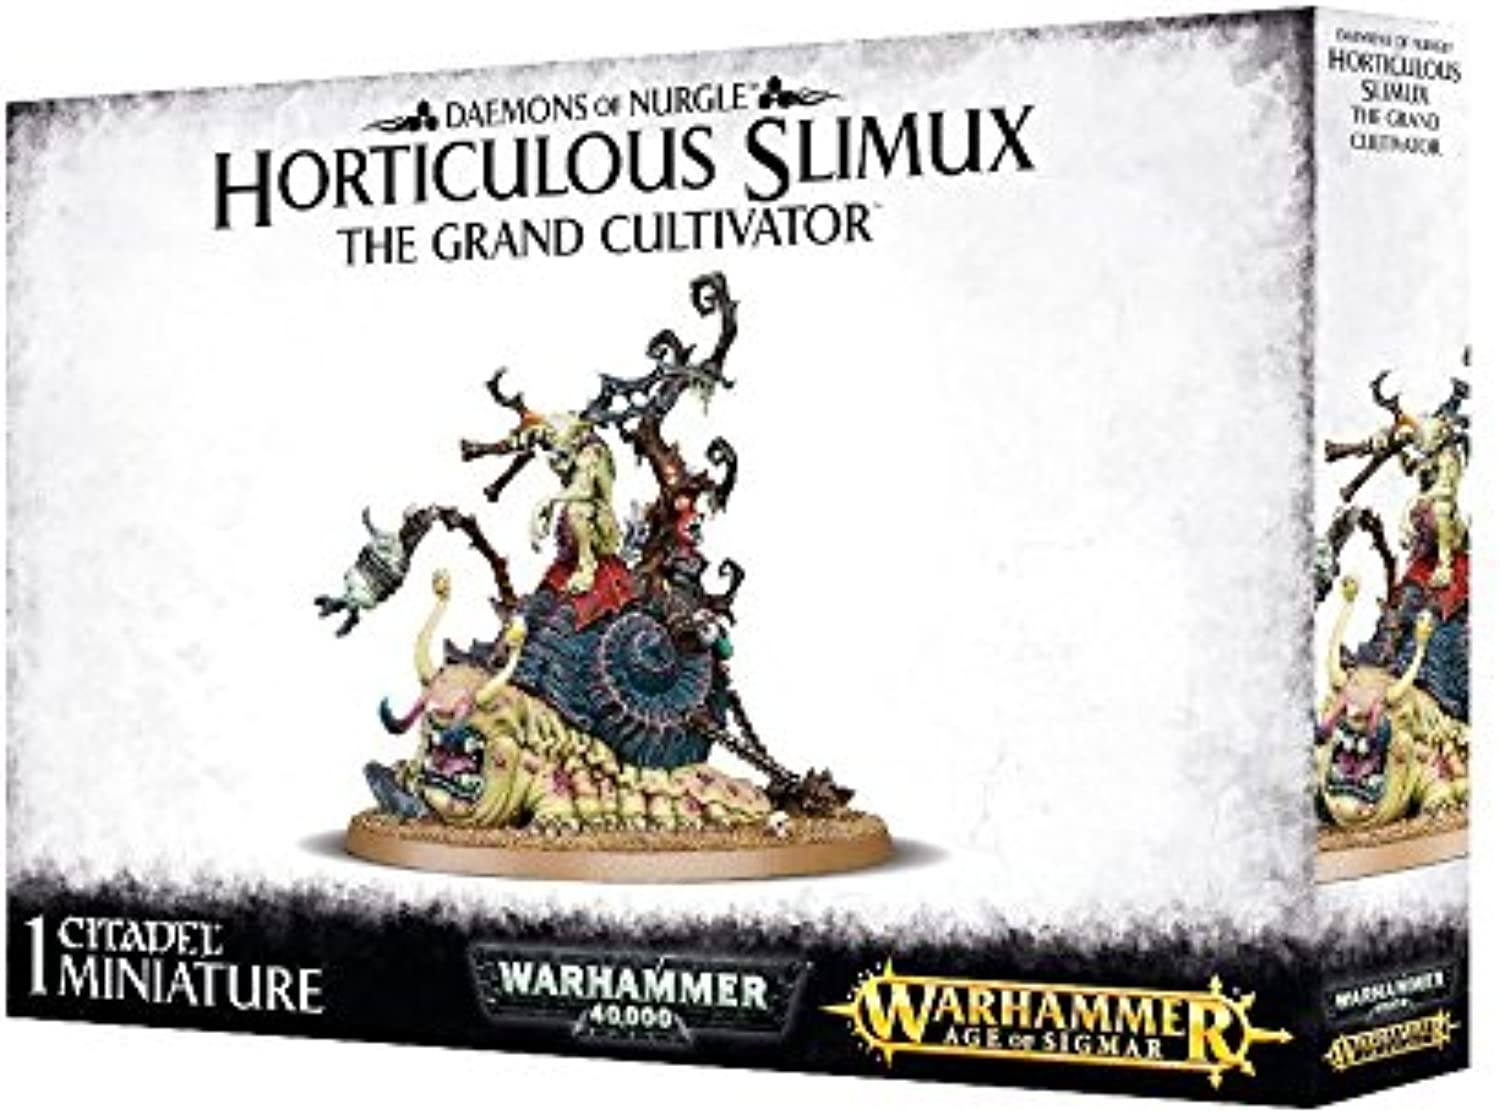 Daemons of Nurgle Horticulous Slimux The Grand Cultivator Warhammer 40.000 Age of Sigmar